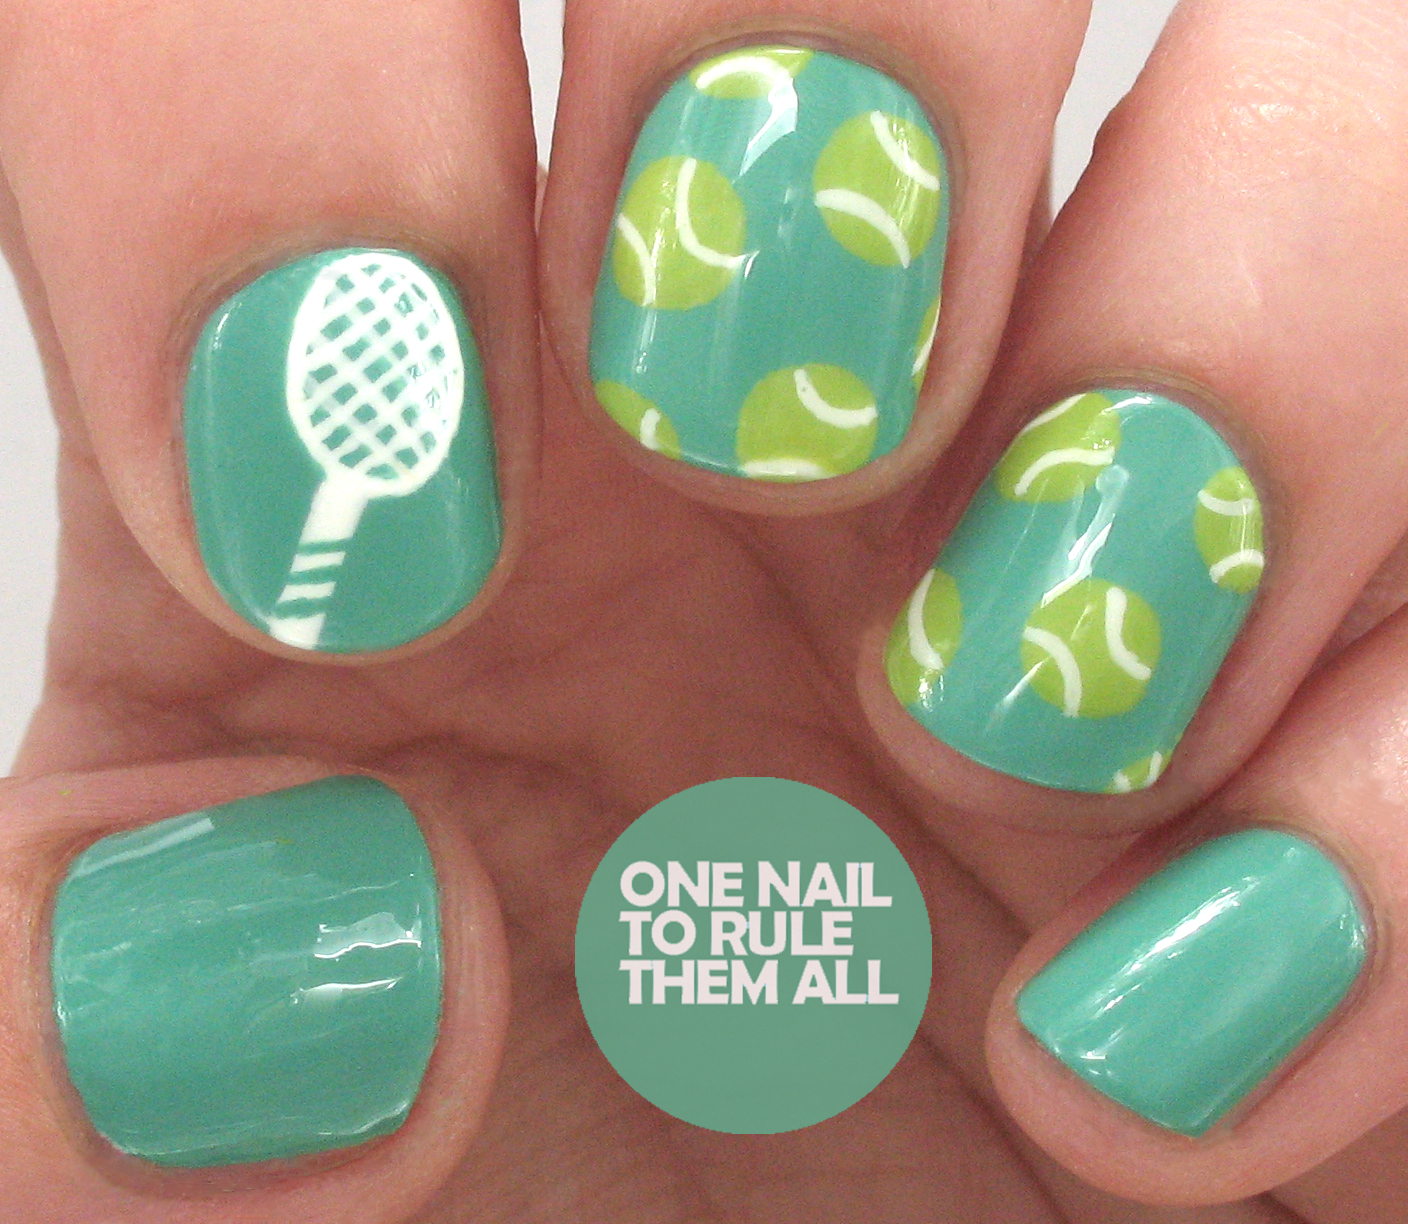 One nail to rule them all tenniswimbledon nail art for avon the base for these is avon turquoise pop and then i used acrylic paint for the white and a mix of colours for the green topped off with a coat of seche prinsesfo Choice Image